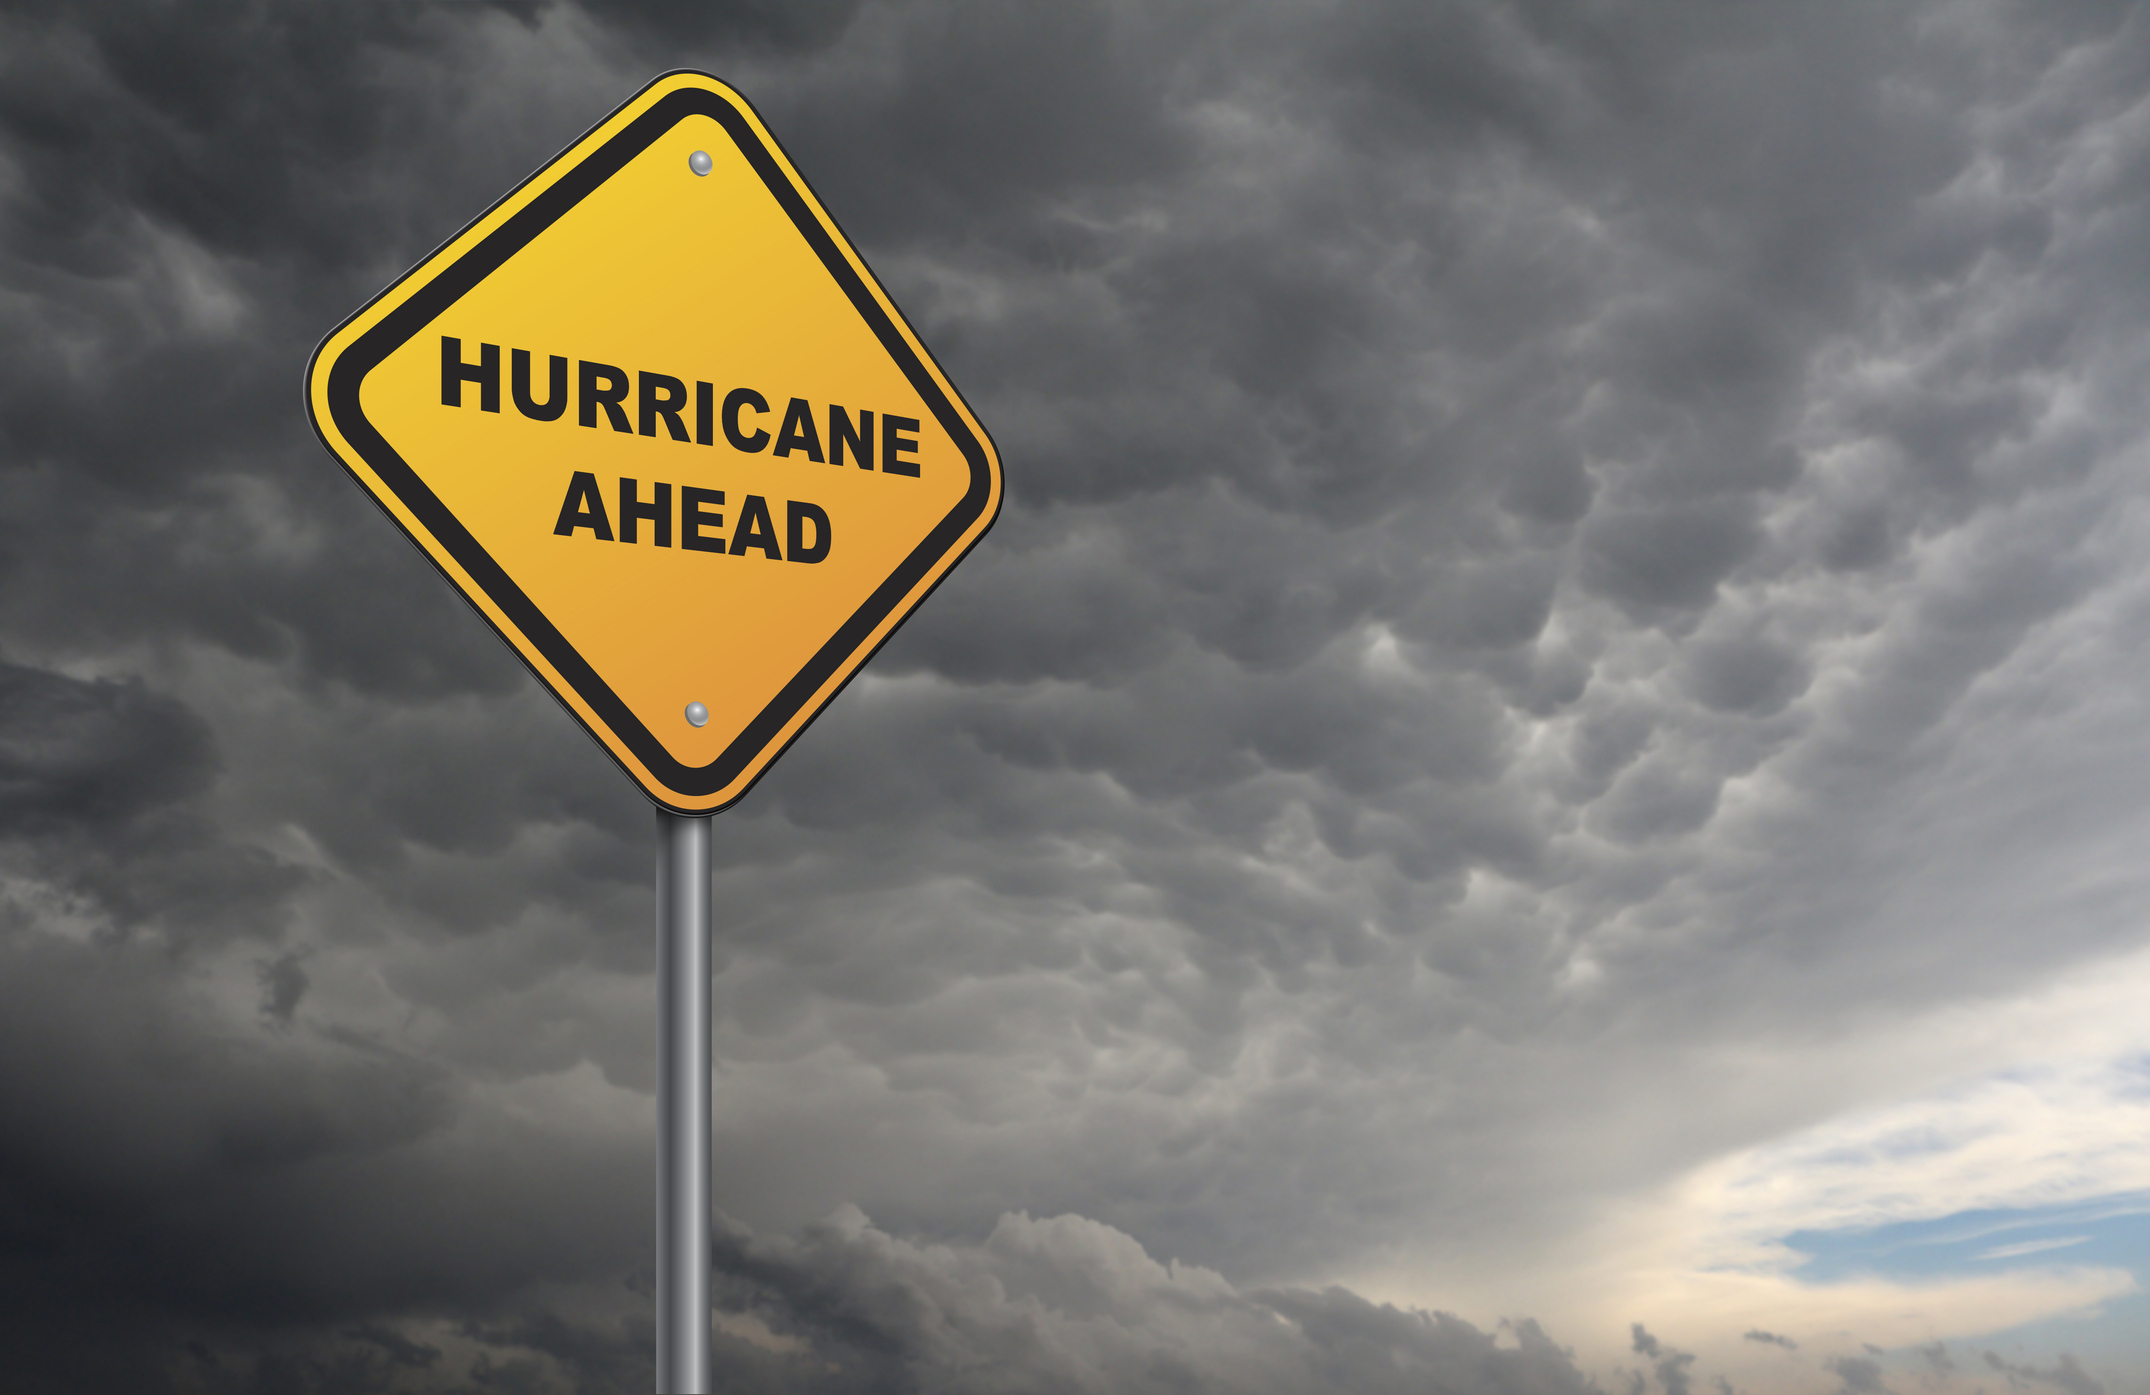 image of hurricane sign